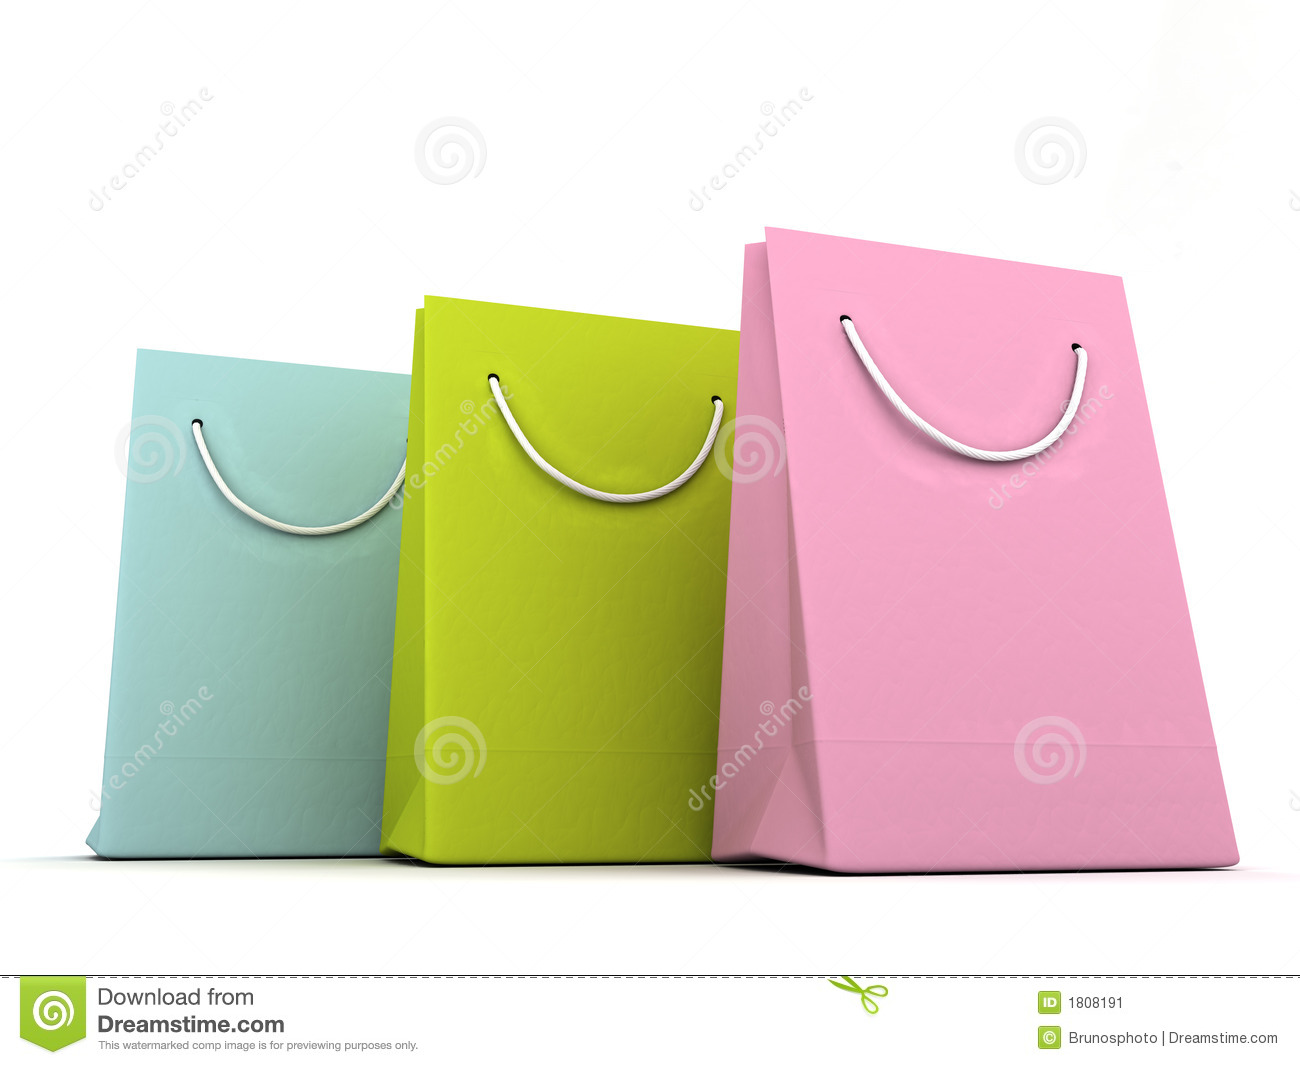 3D Render Of Luxury Shopping Bags Stock Image - Image: 1808191